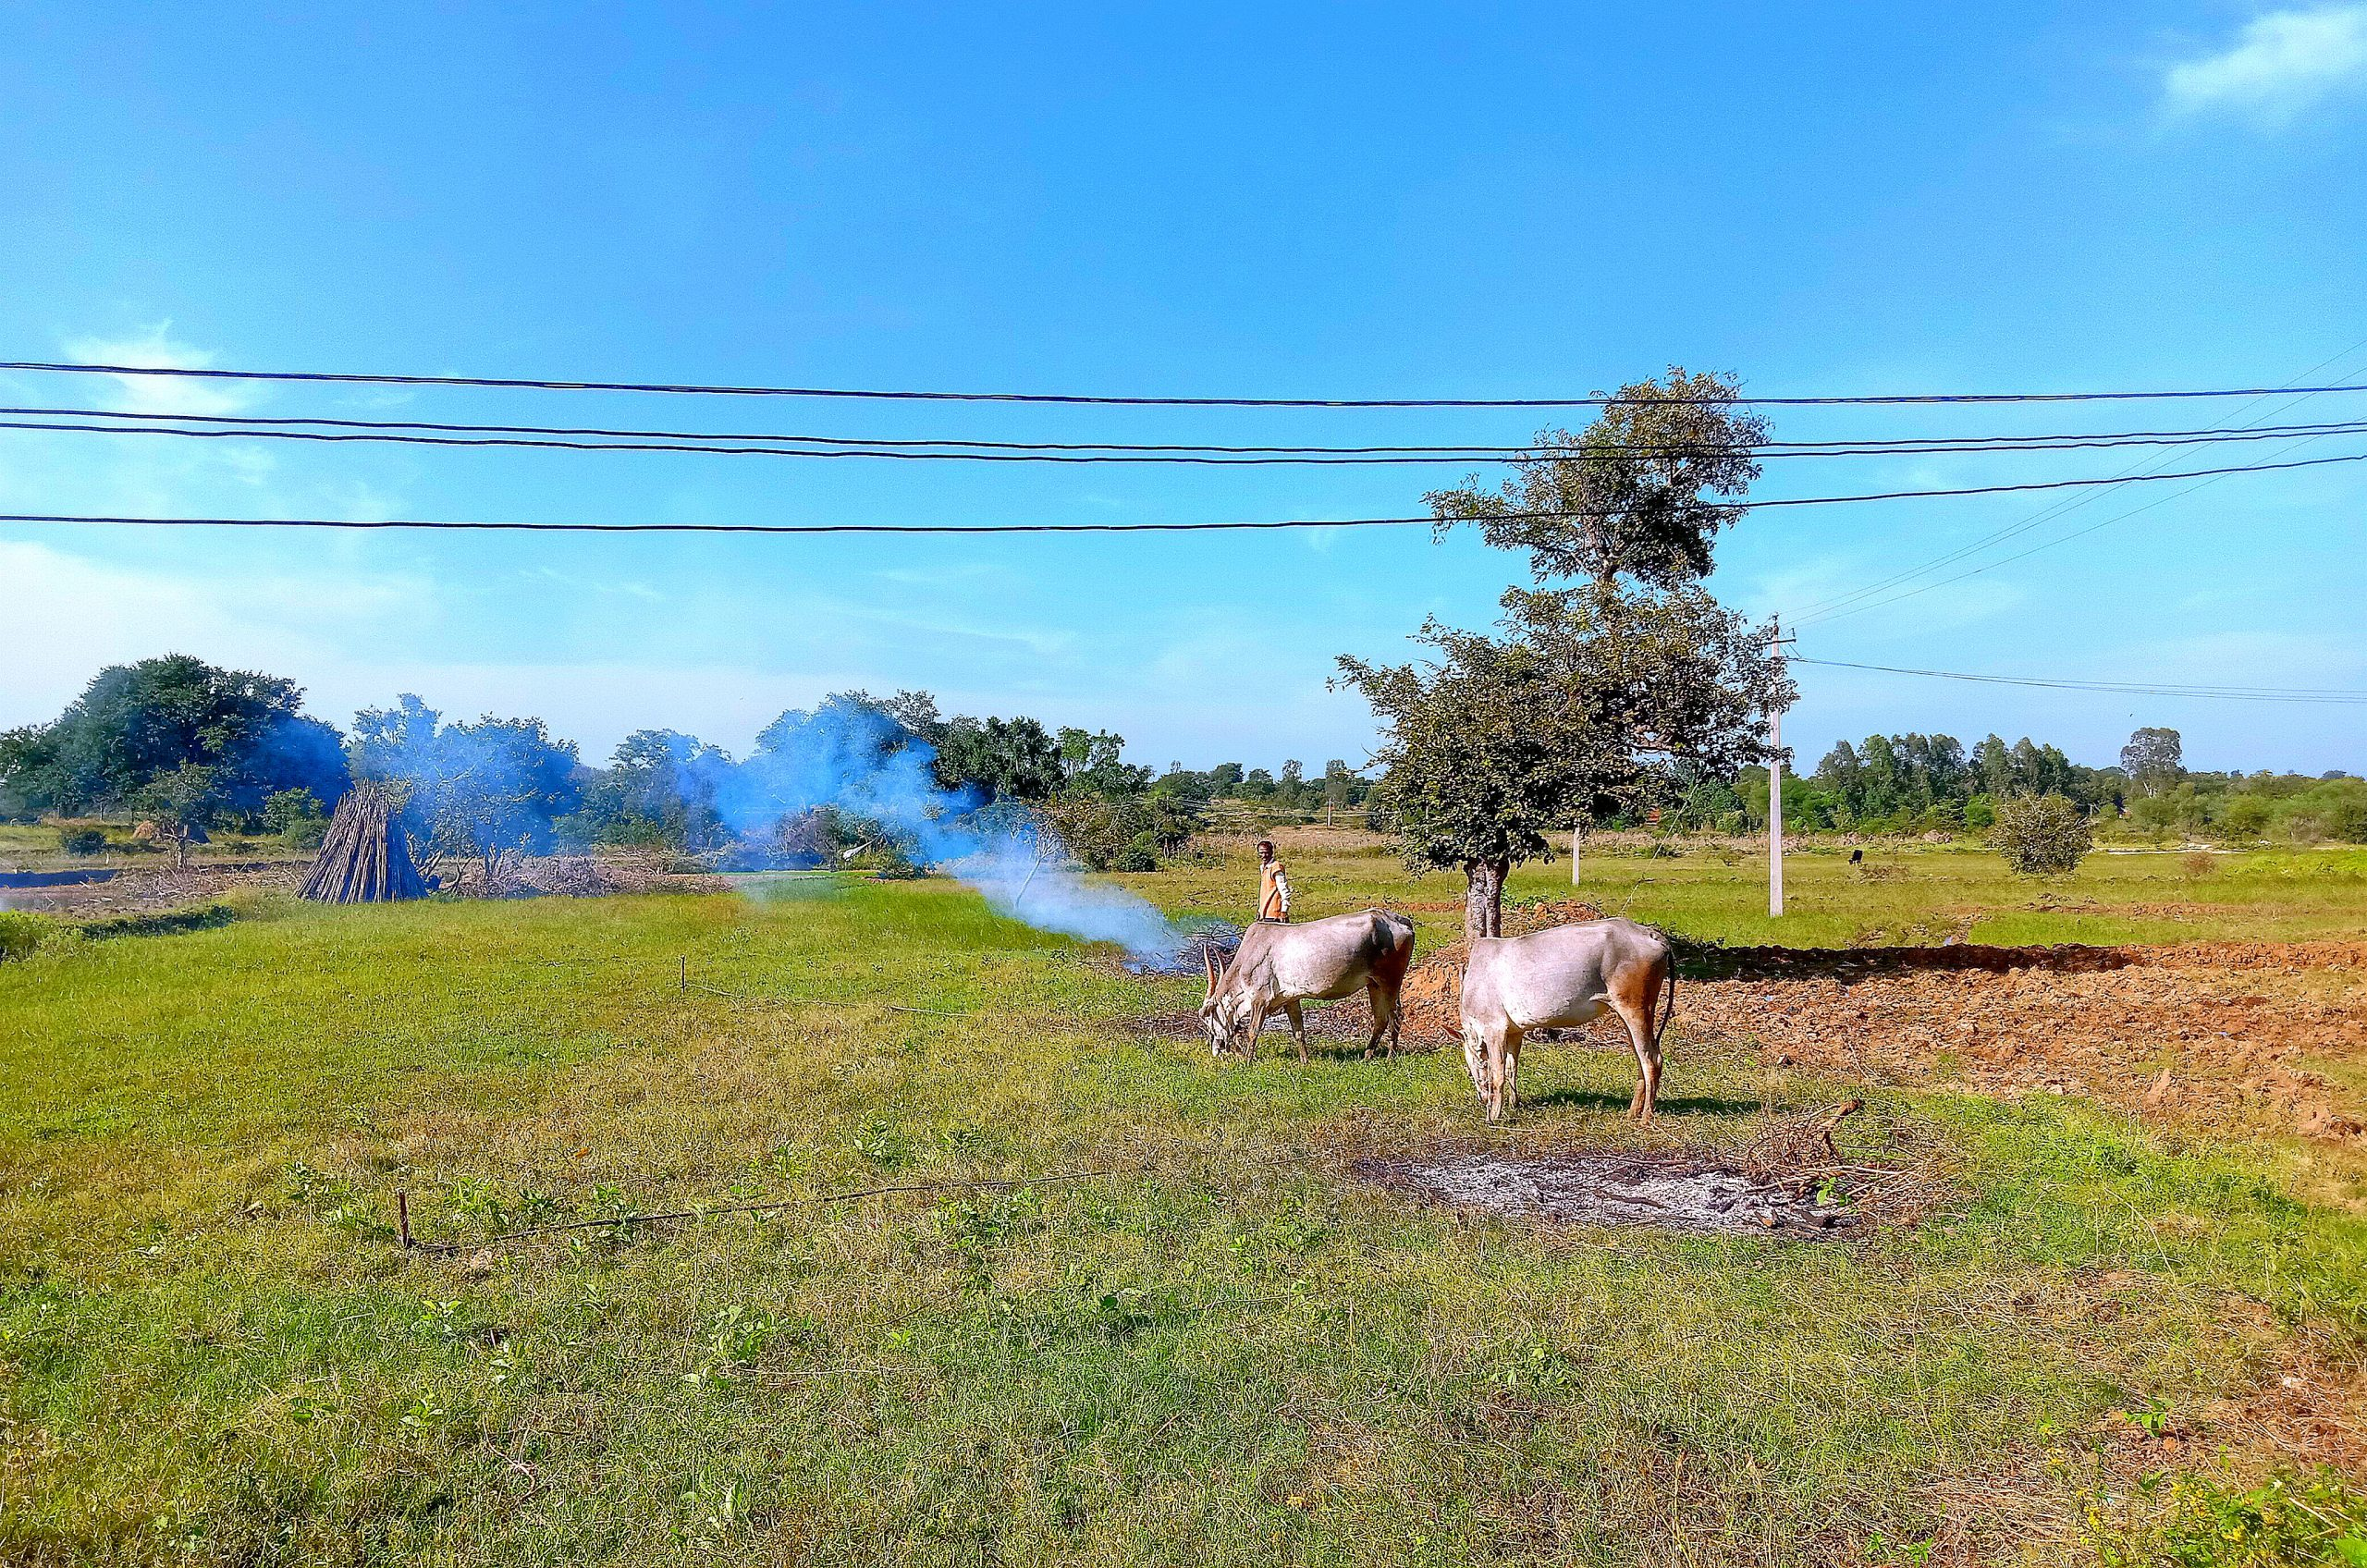 Oxen in agriculture land